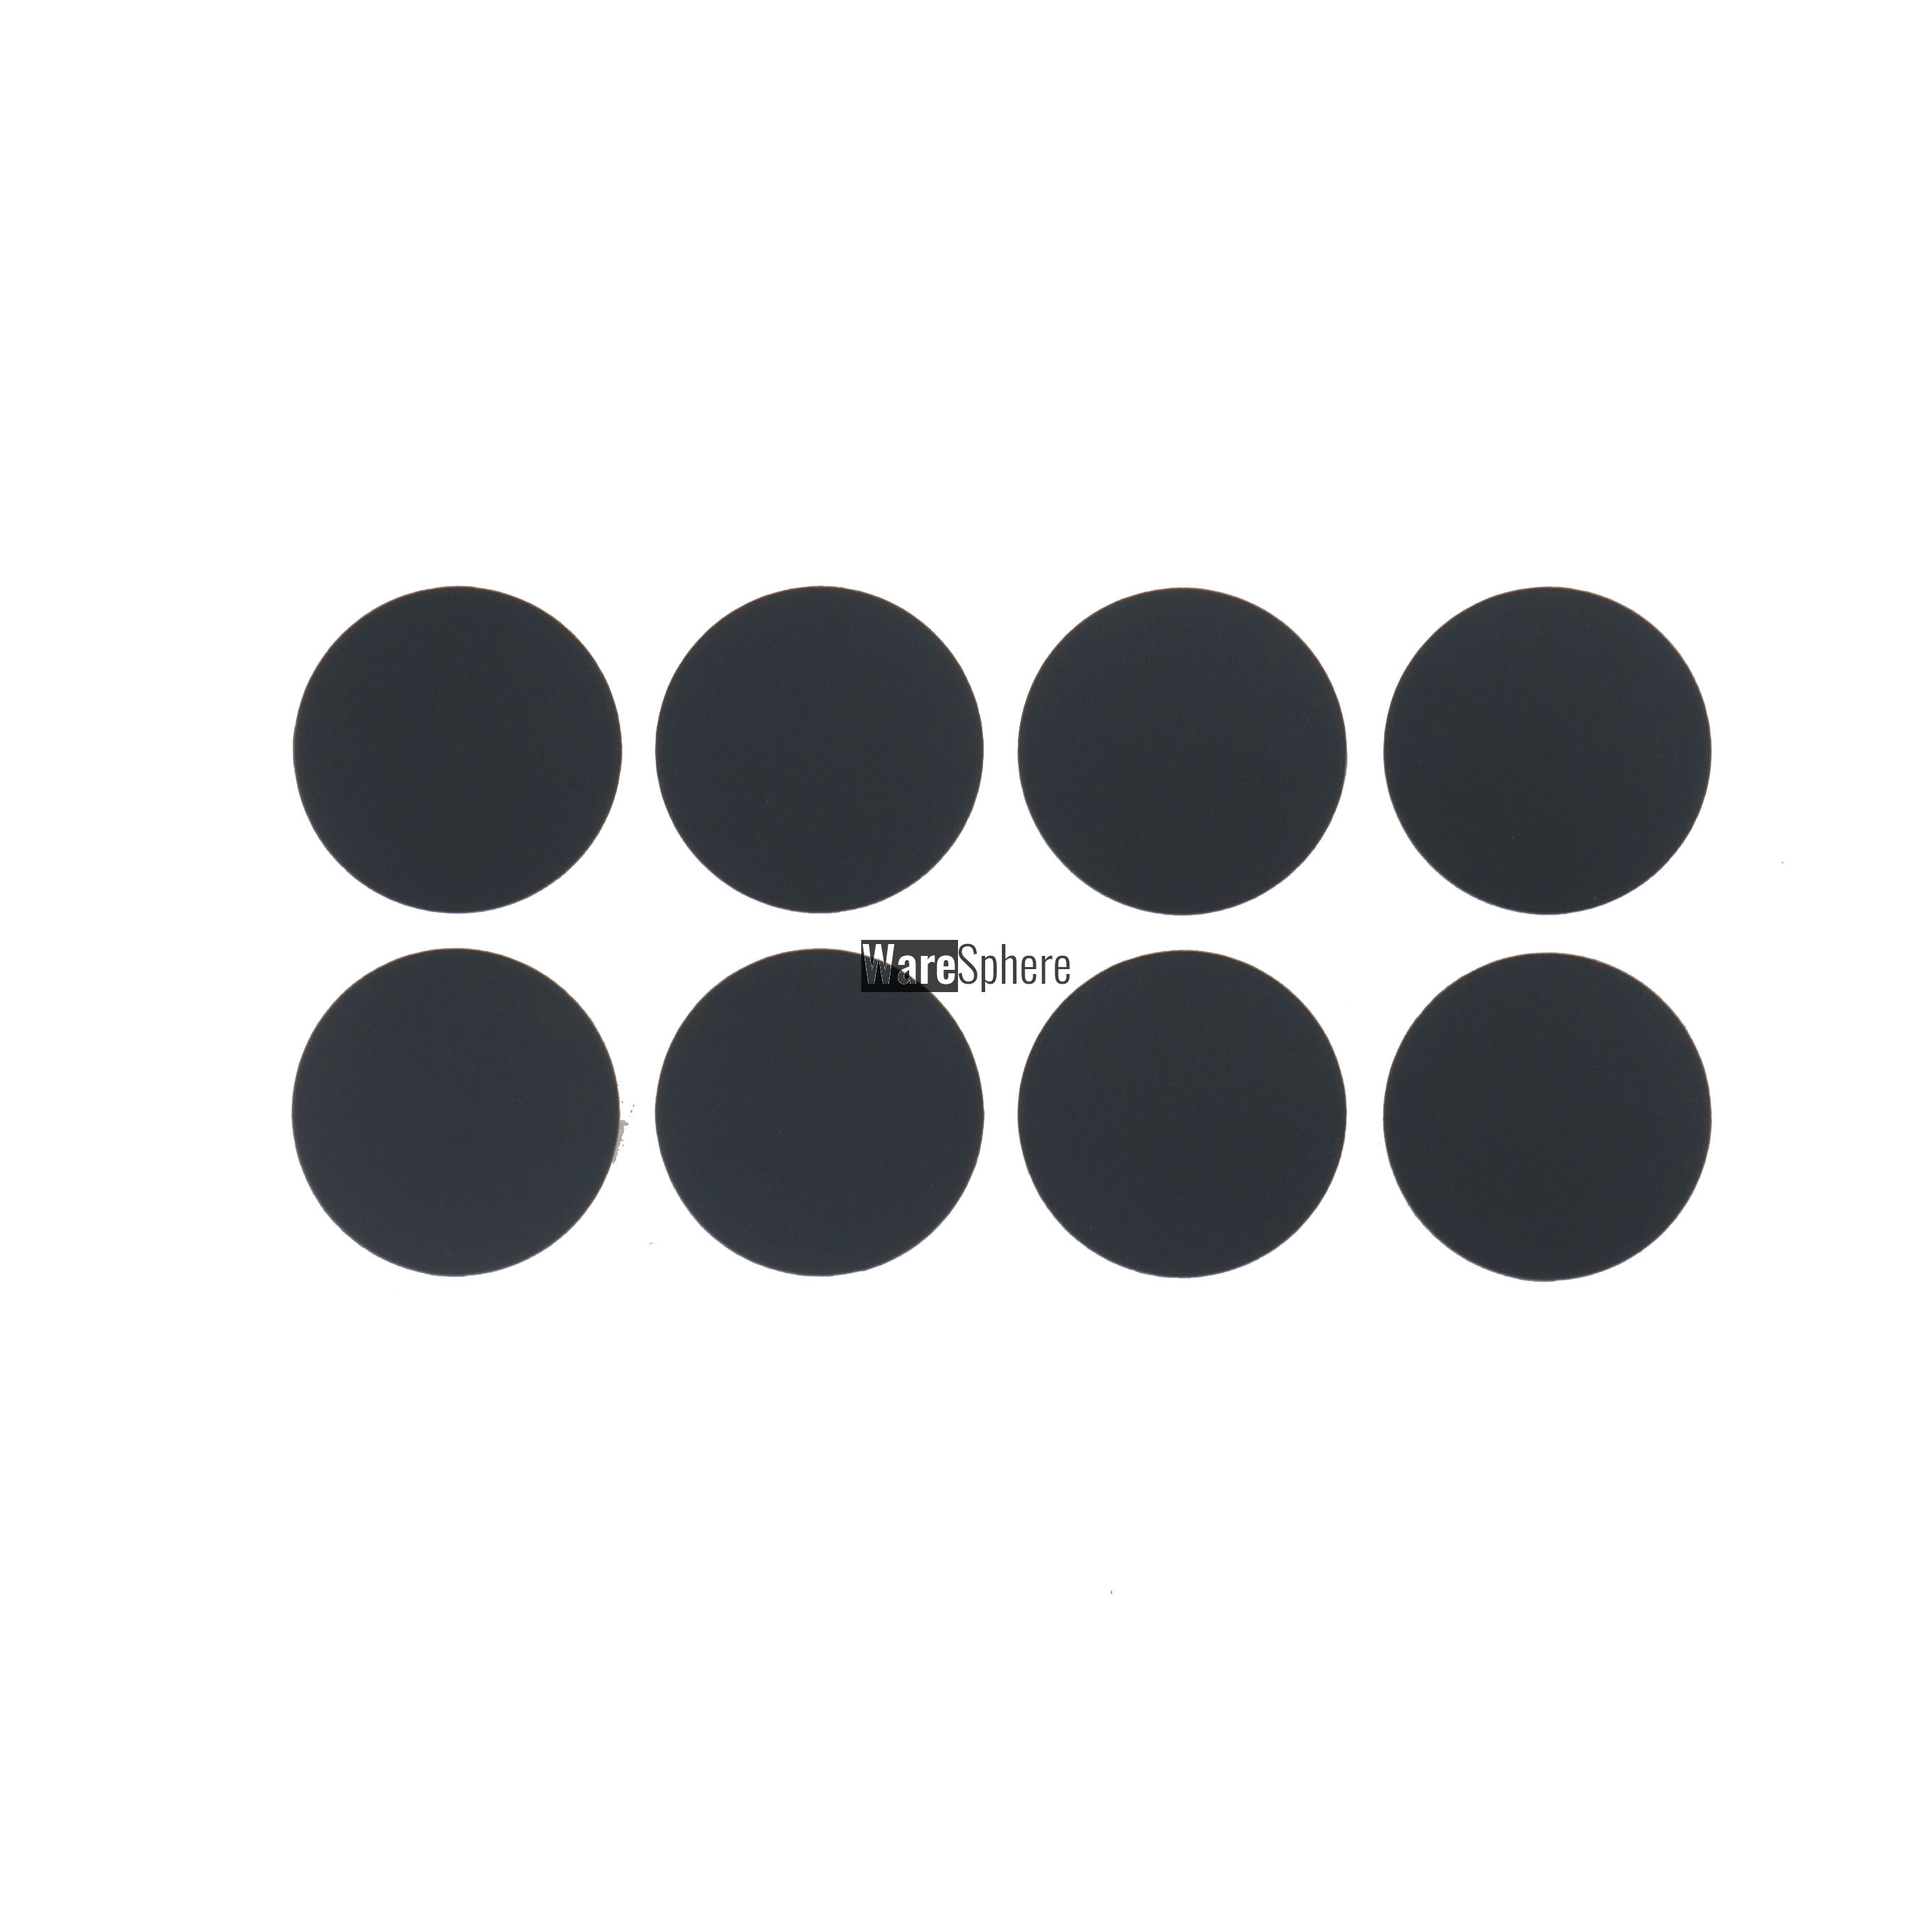 Rubbers for HP Chromebook 11 G4 EE 851133-001 3XY07BFTP00